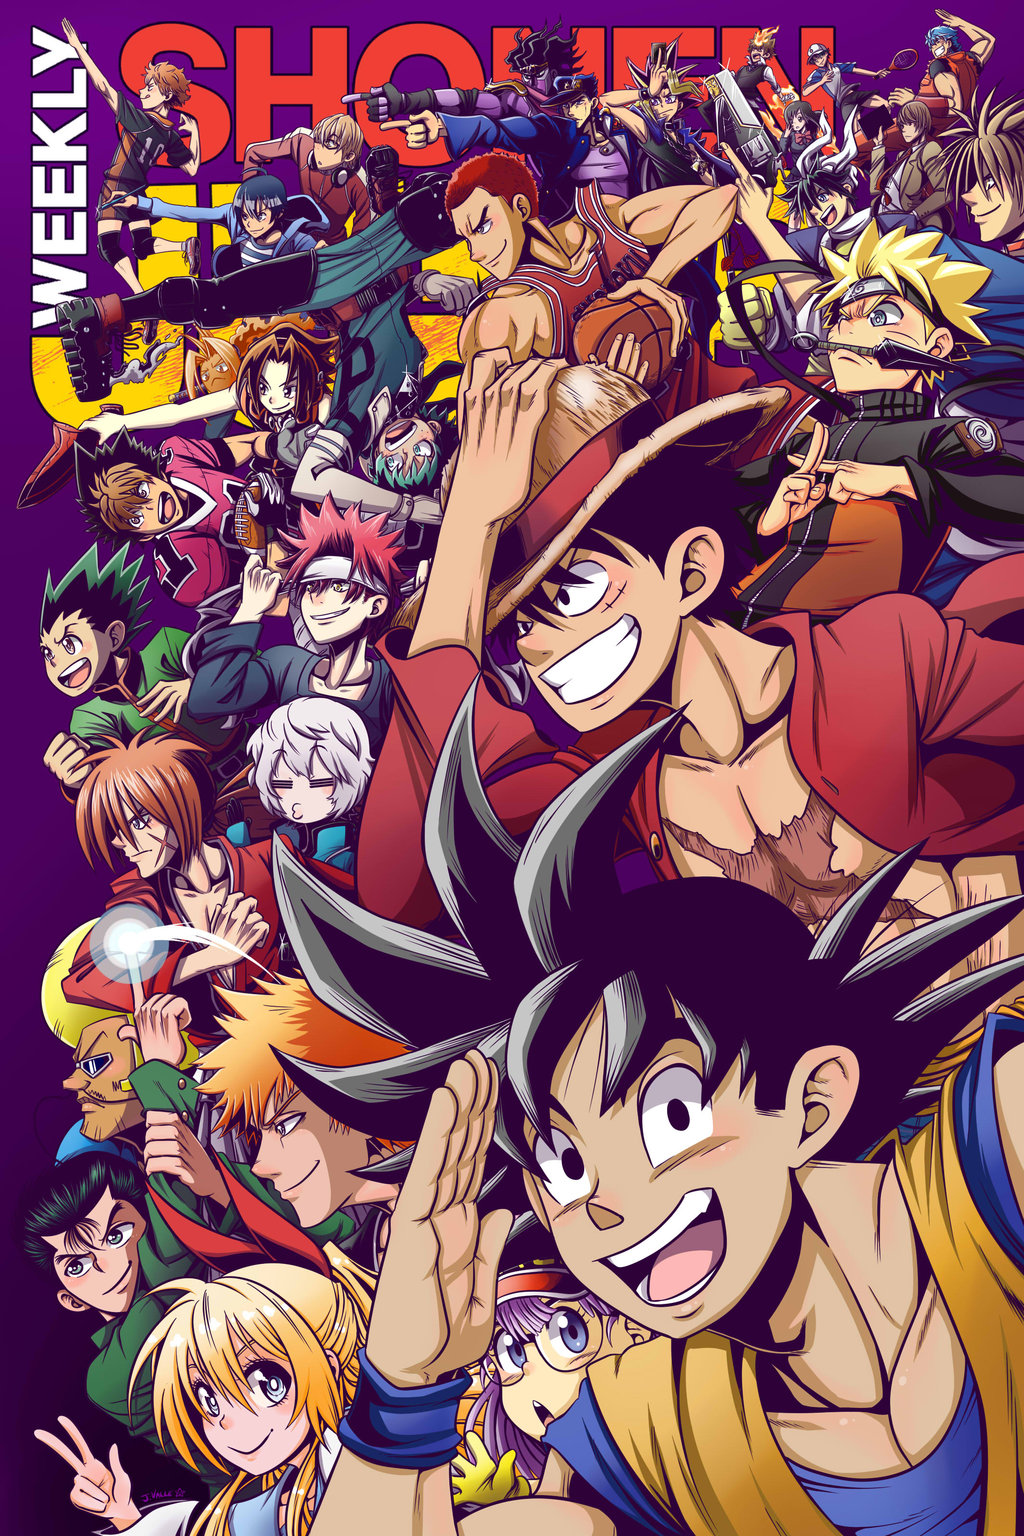 Source https kentaropjj deviantart com art weekly shonen jump 2016 cover contest entry 656475577